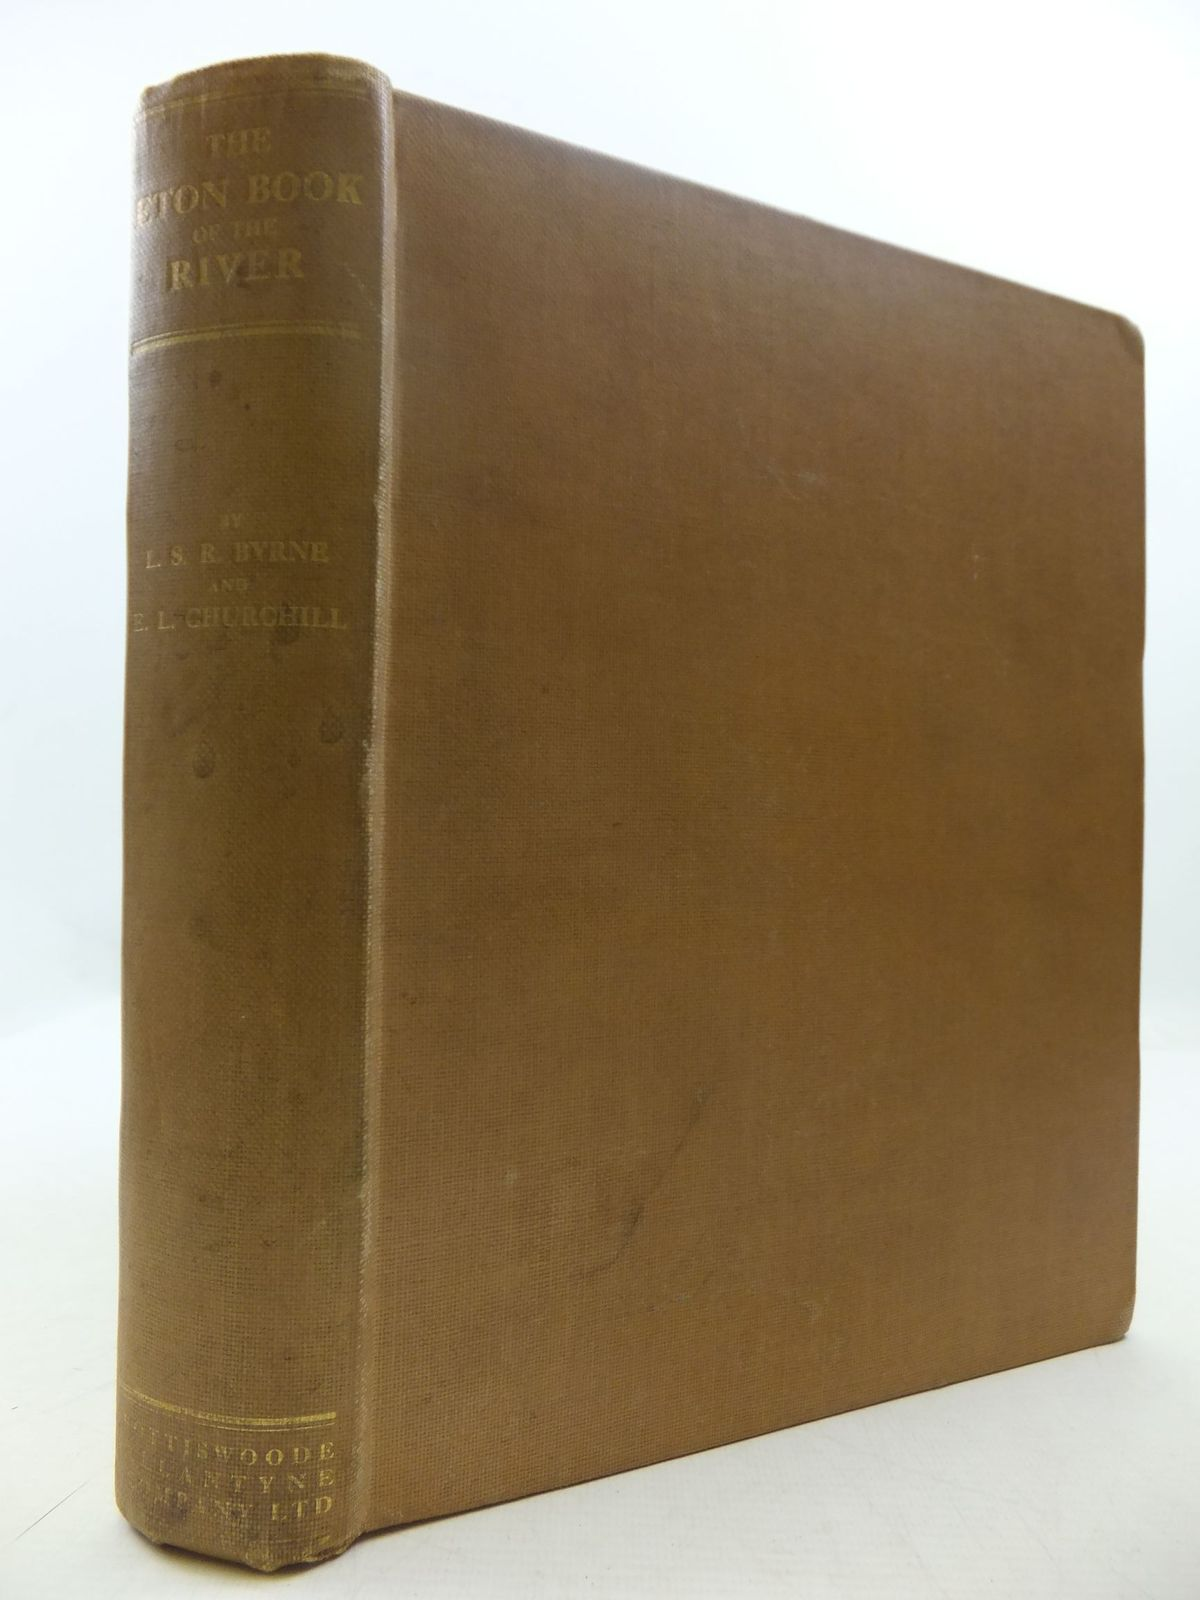 Photo of THE ETON BOOK OF THE RIVER written by Byrne, L.S.R.<br />Churchill, E.L. published by Spottiswoode, Ballantyne & Co. Ltd. (STOCK CODE: 1708712)  for sale by Stella & Rose's Books